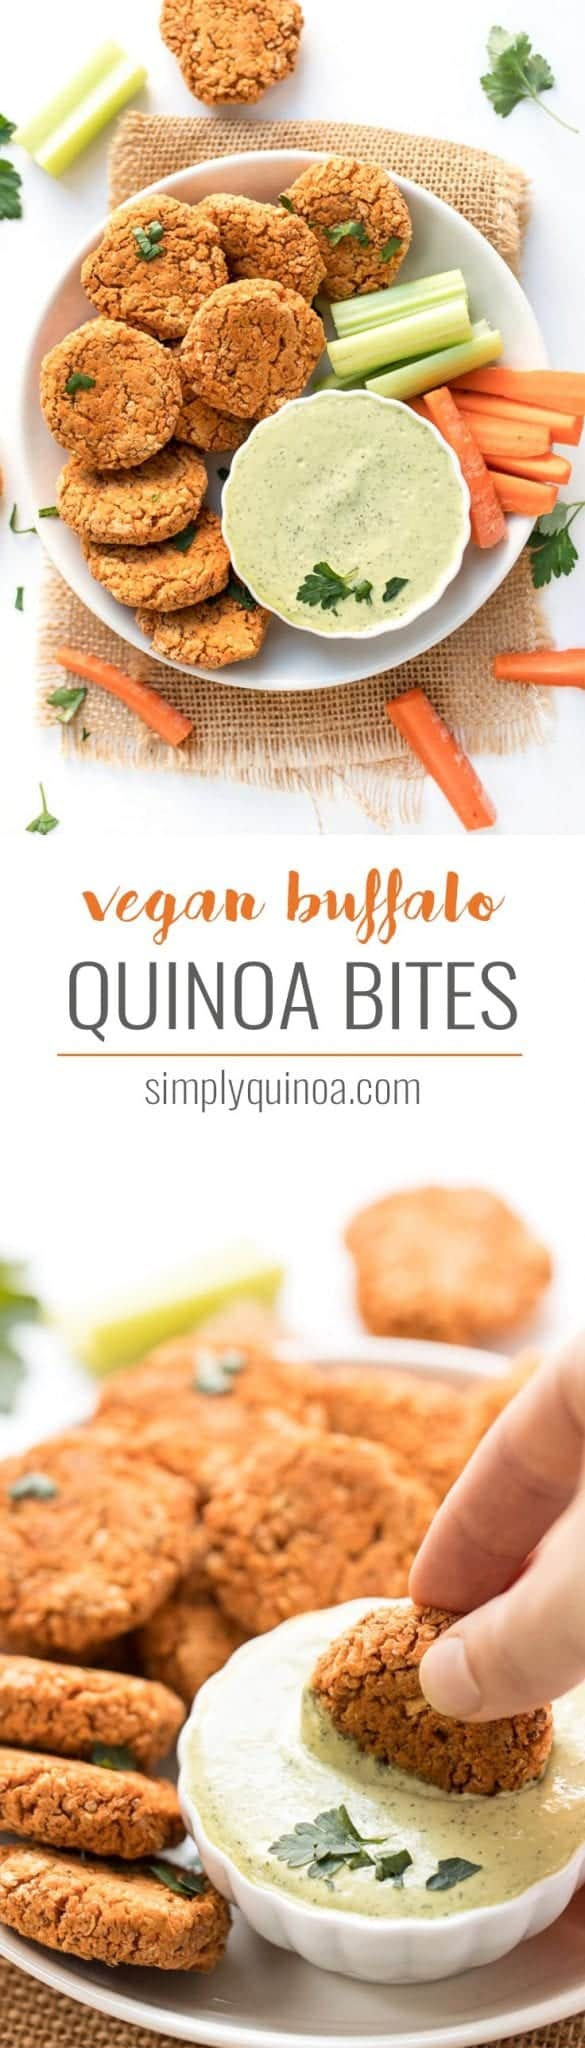 how to make vegan buffalo quinoa bites